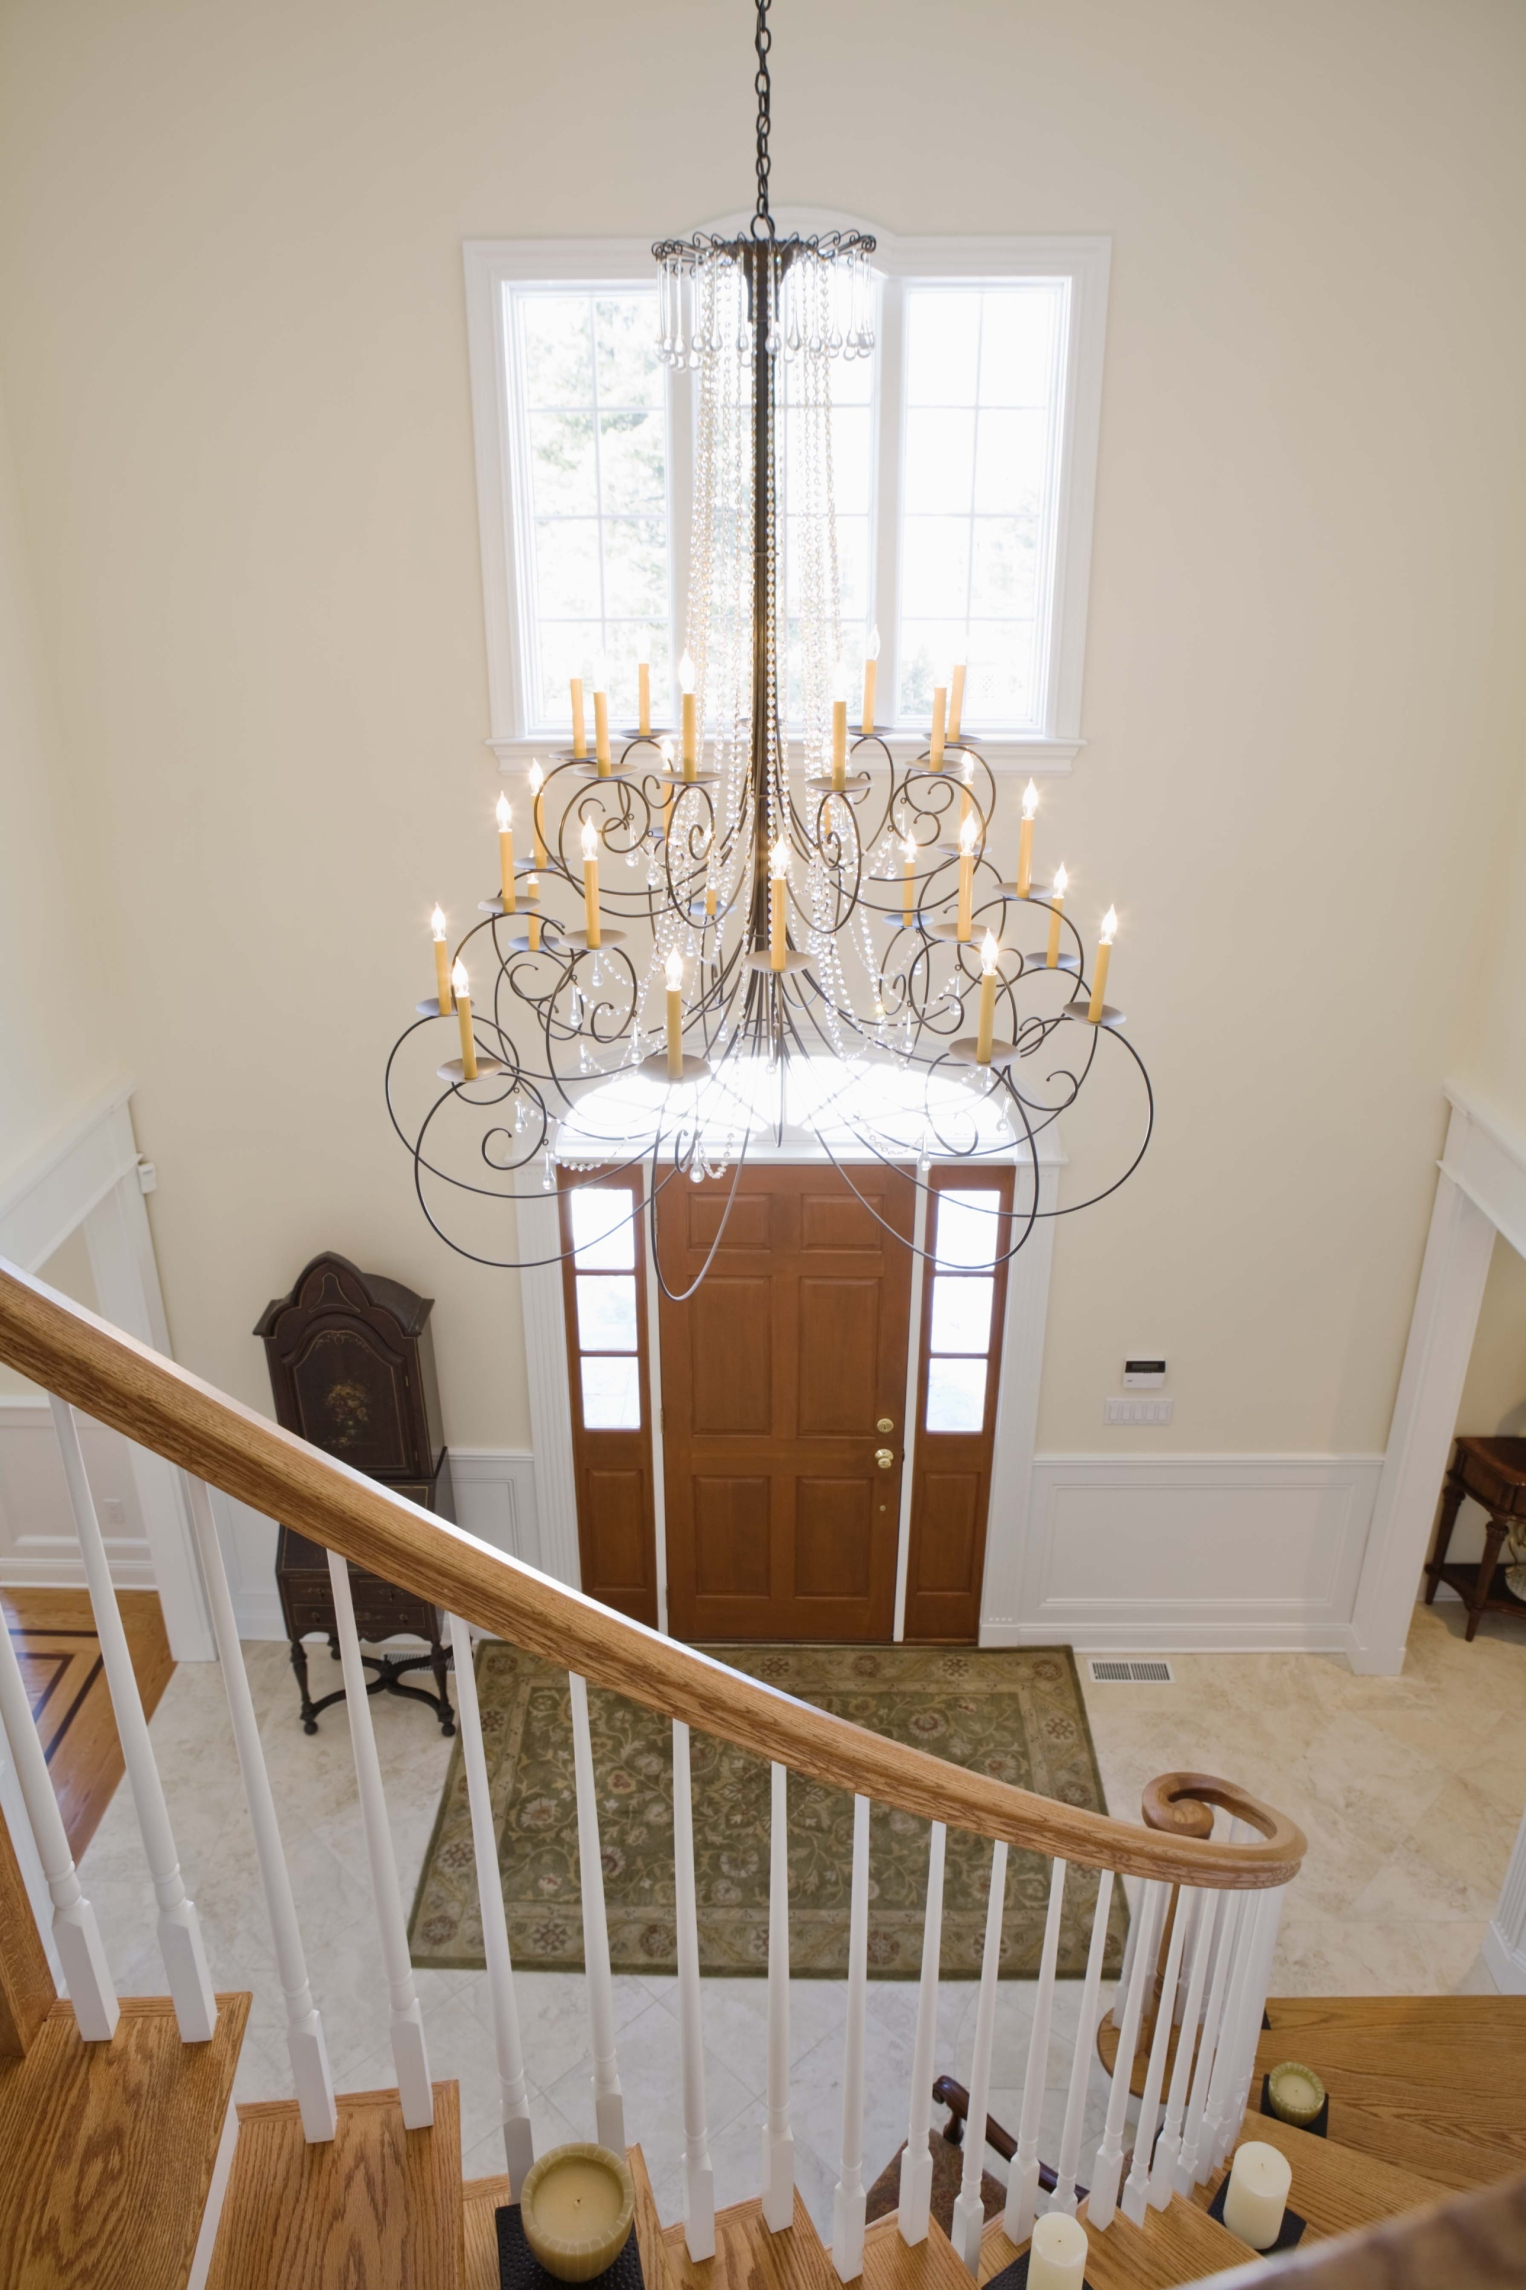 How to hang a chandelier from a sloped ceiling ehow